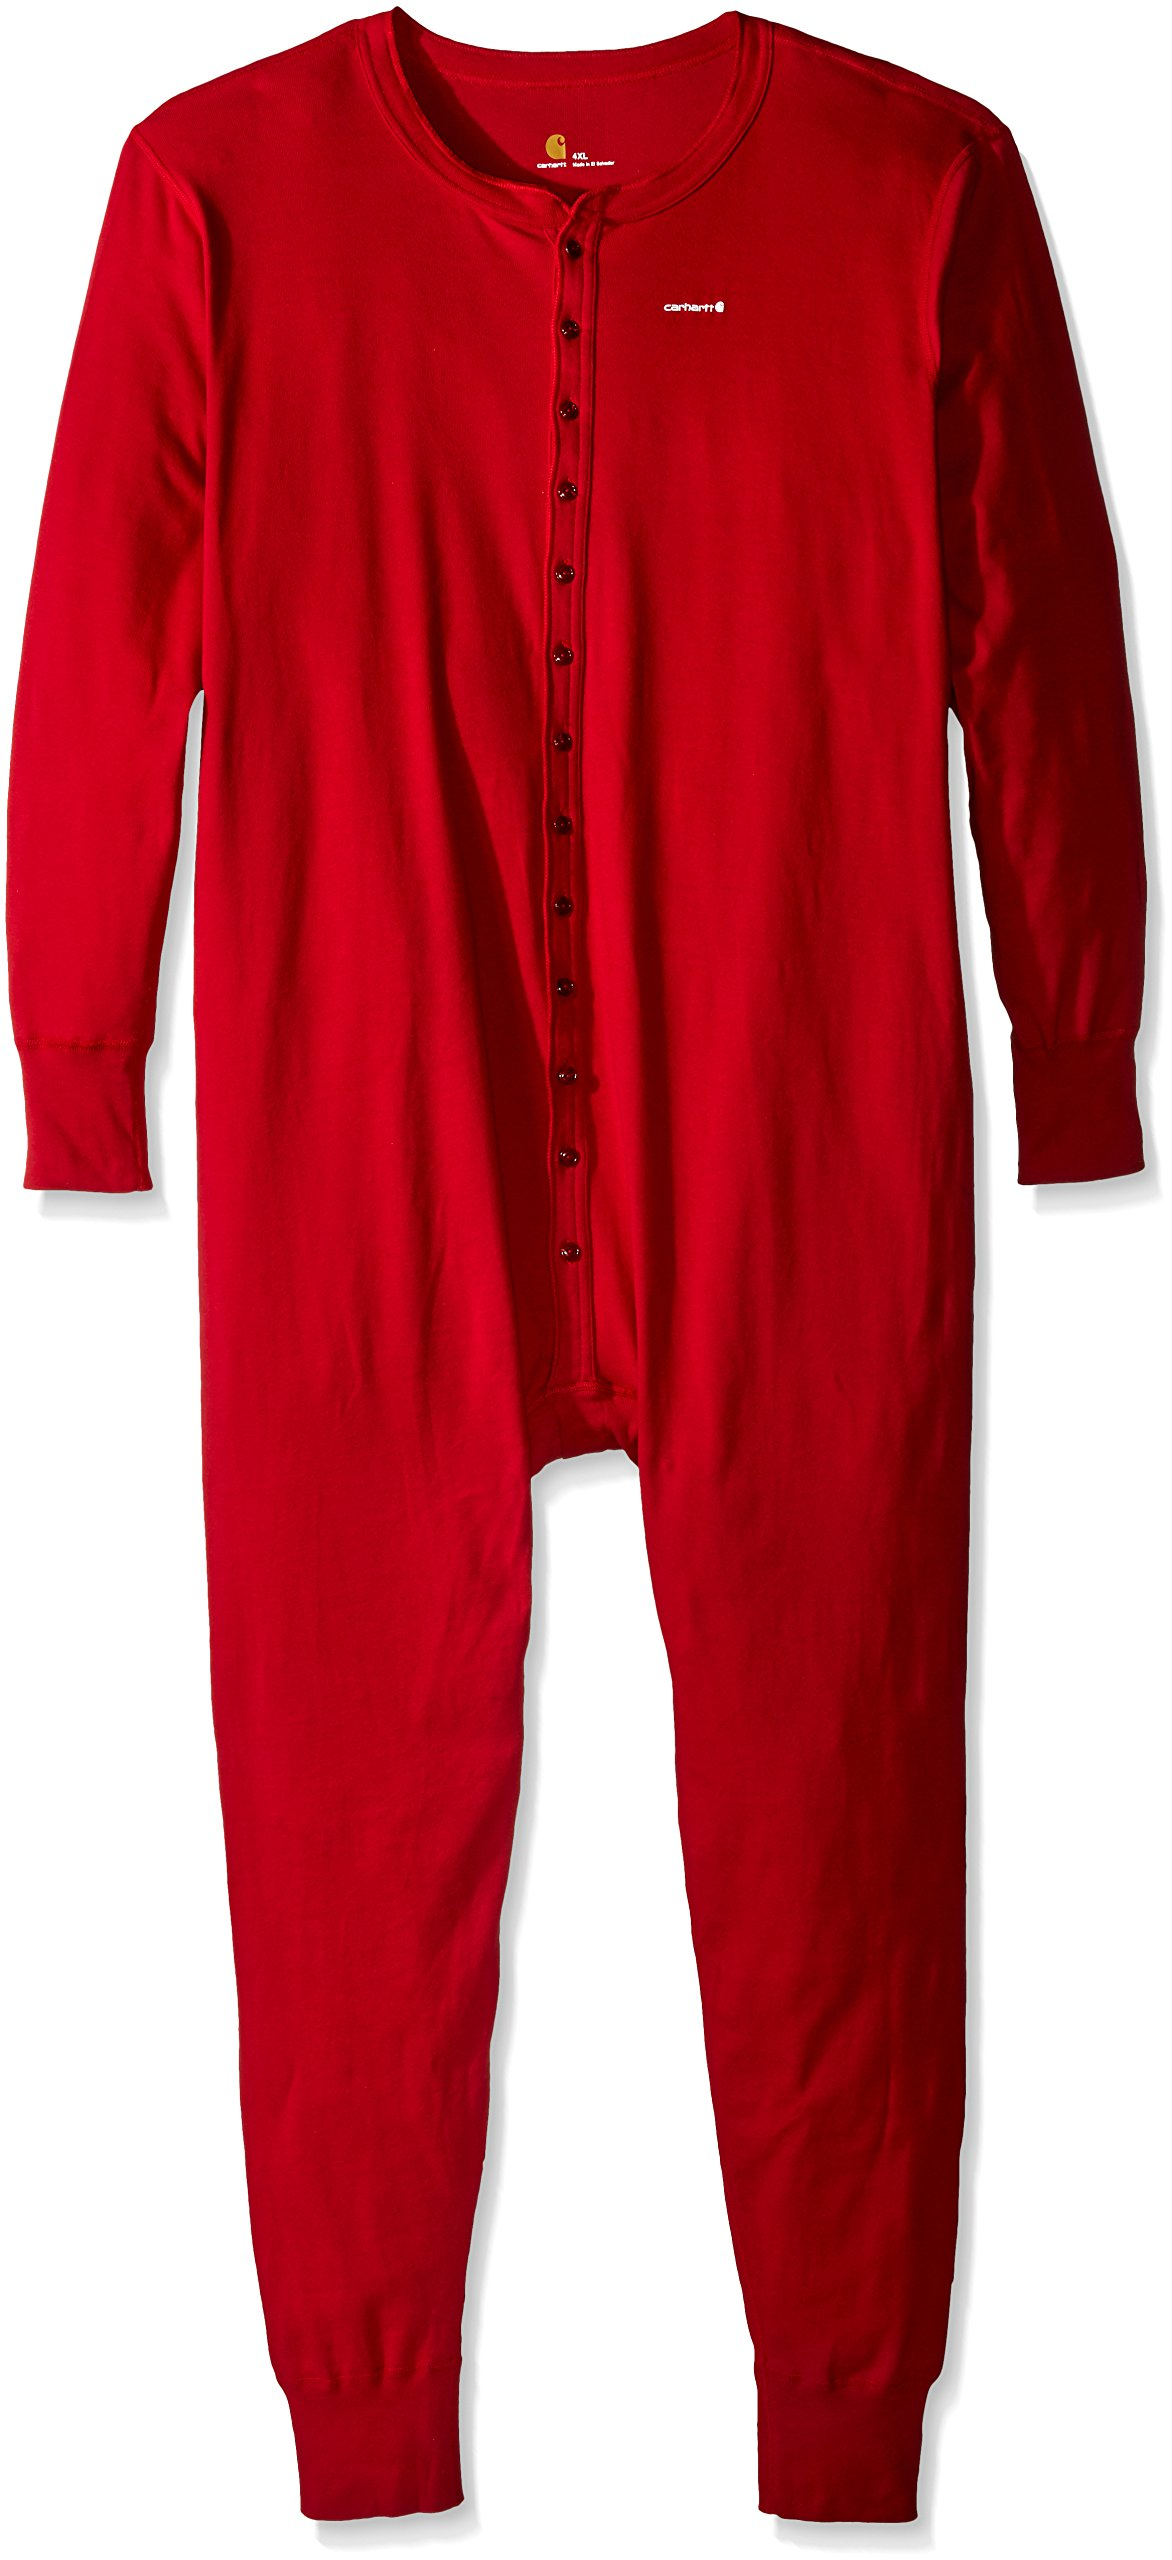 Carhartt Men's Force Classic Thermal Base Layer Union Suit, Red, 3X-Large by Carhartt